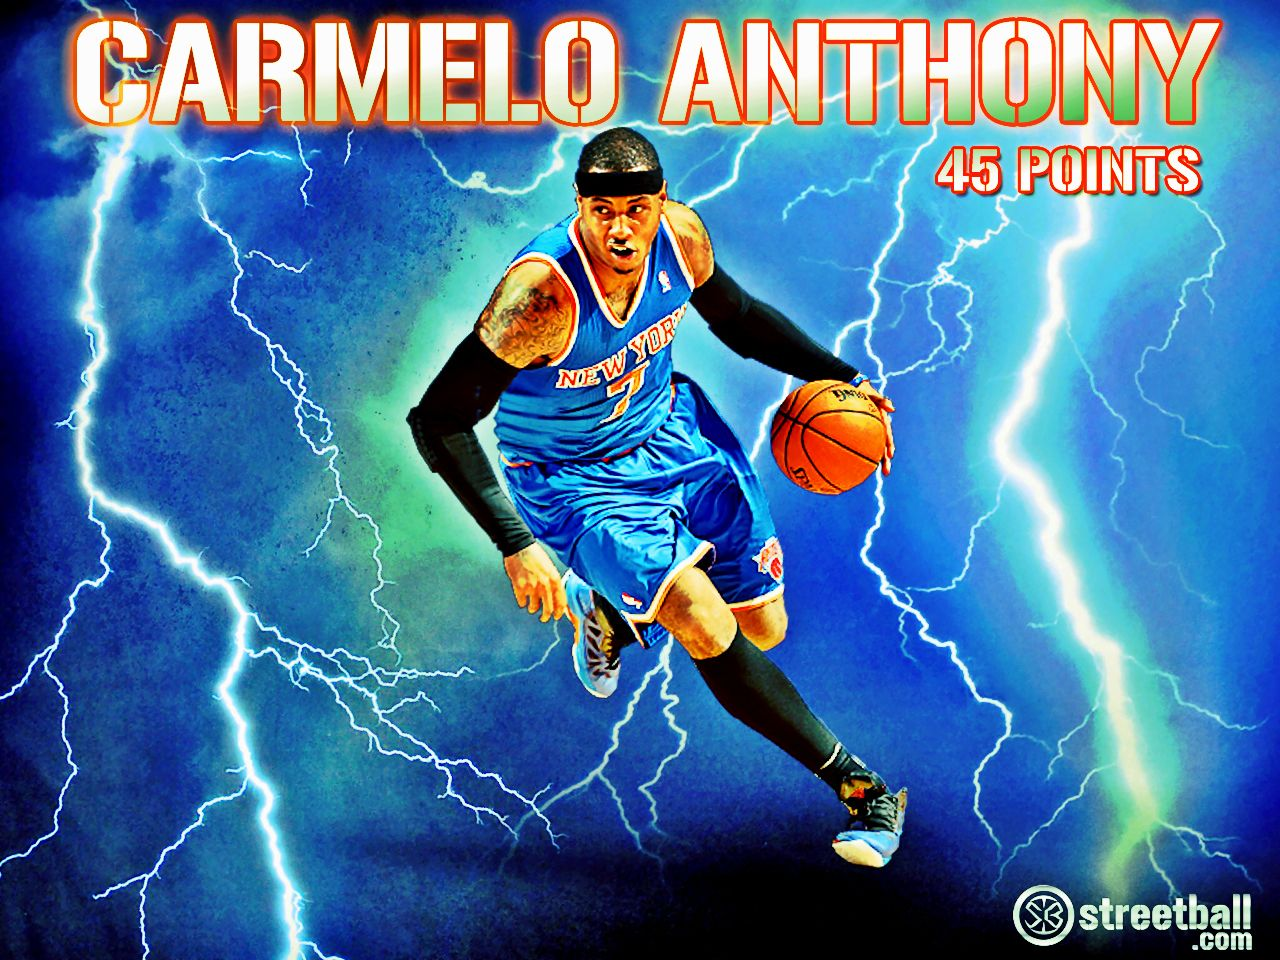 Carmelo anthony new york knicks 45 points nba wallpaper on carmelo anthony new york knicks 45 points nba wallpaper on streetball voltagebd Images